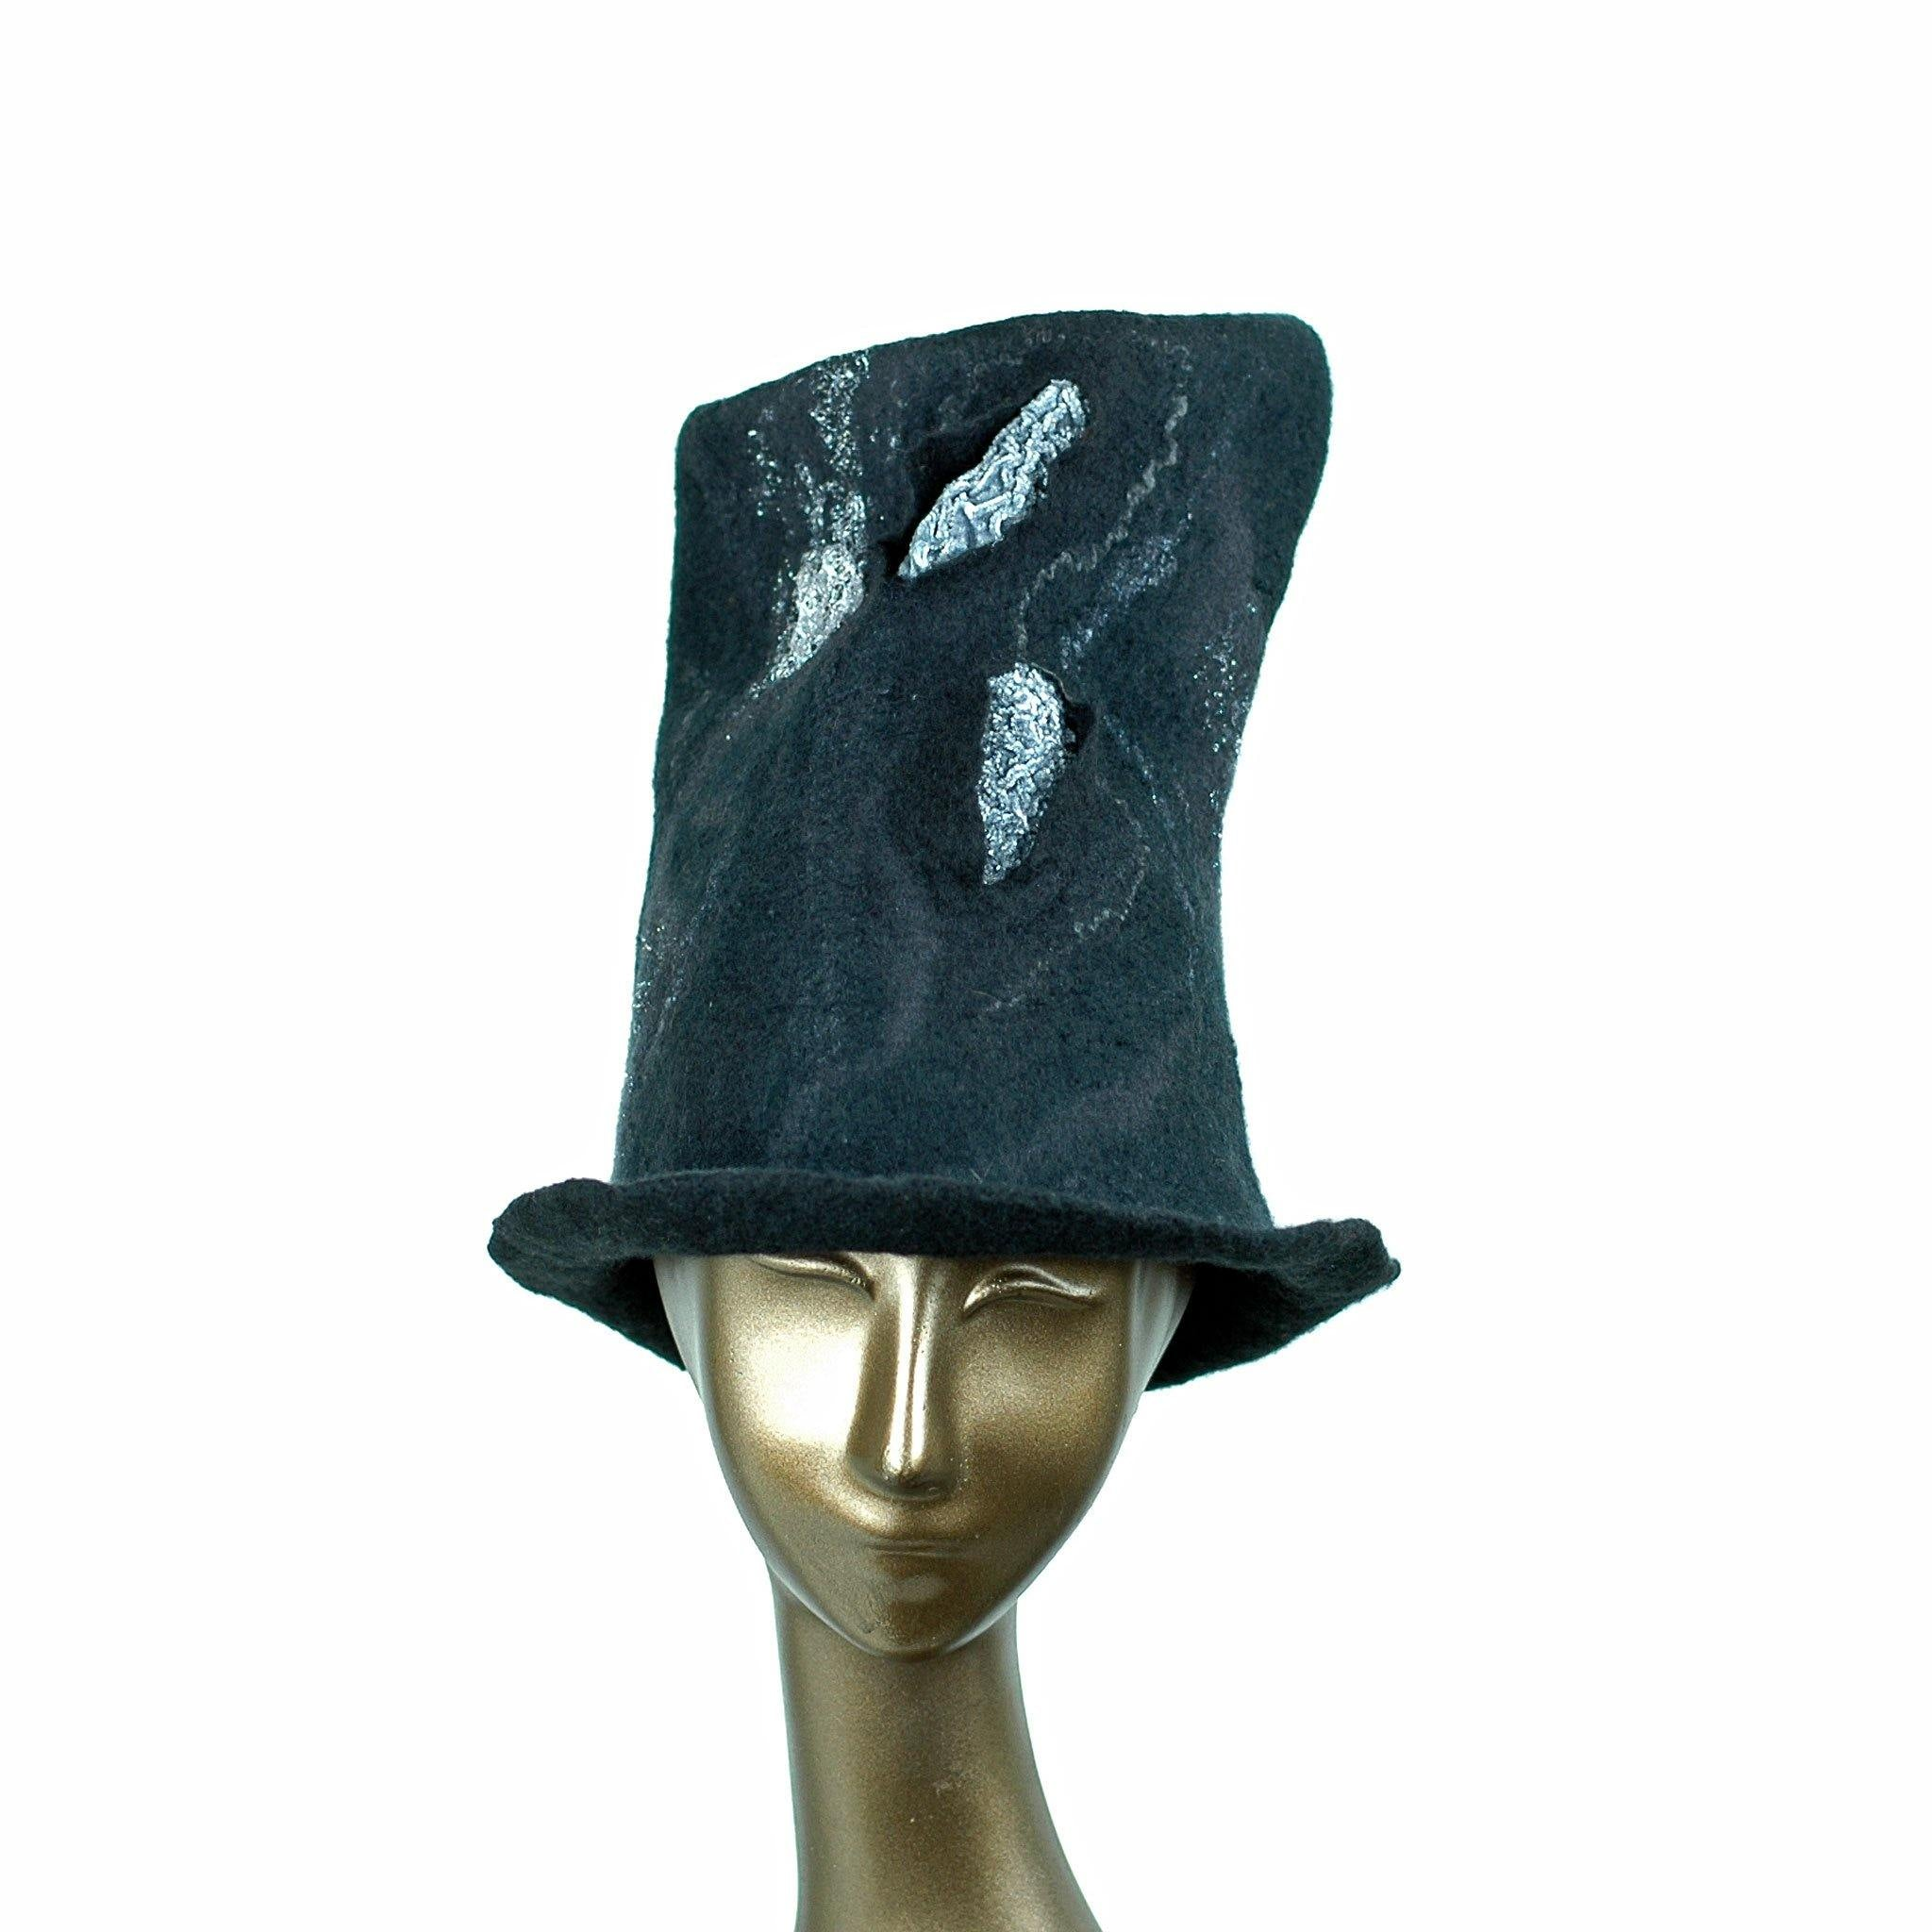 Tall Black Felted Top Hat with Velvet Decorations - front view